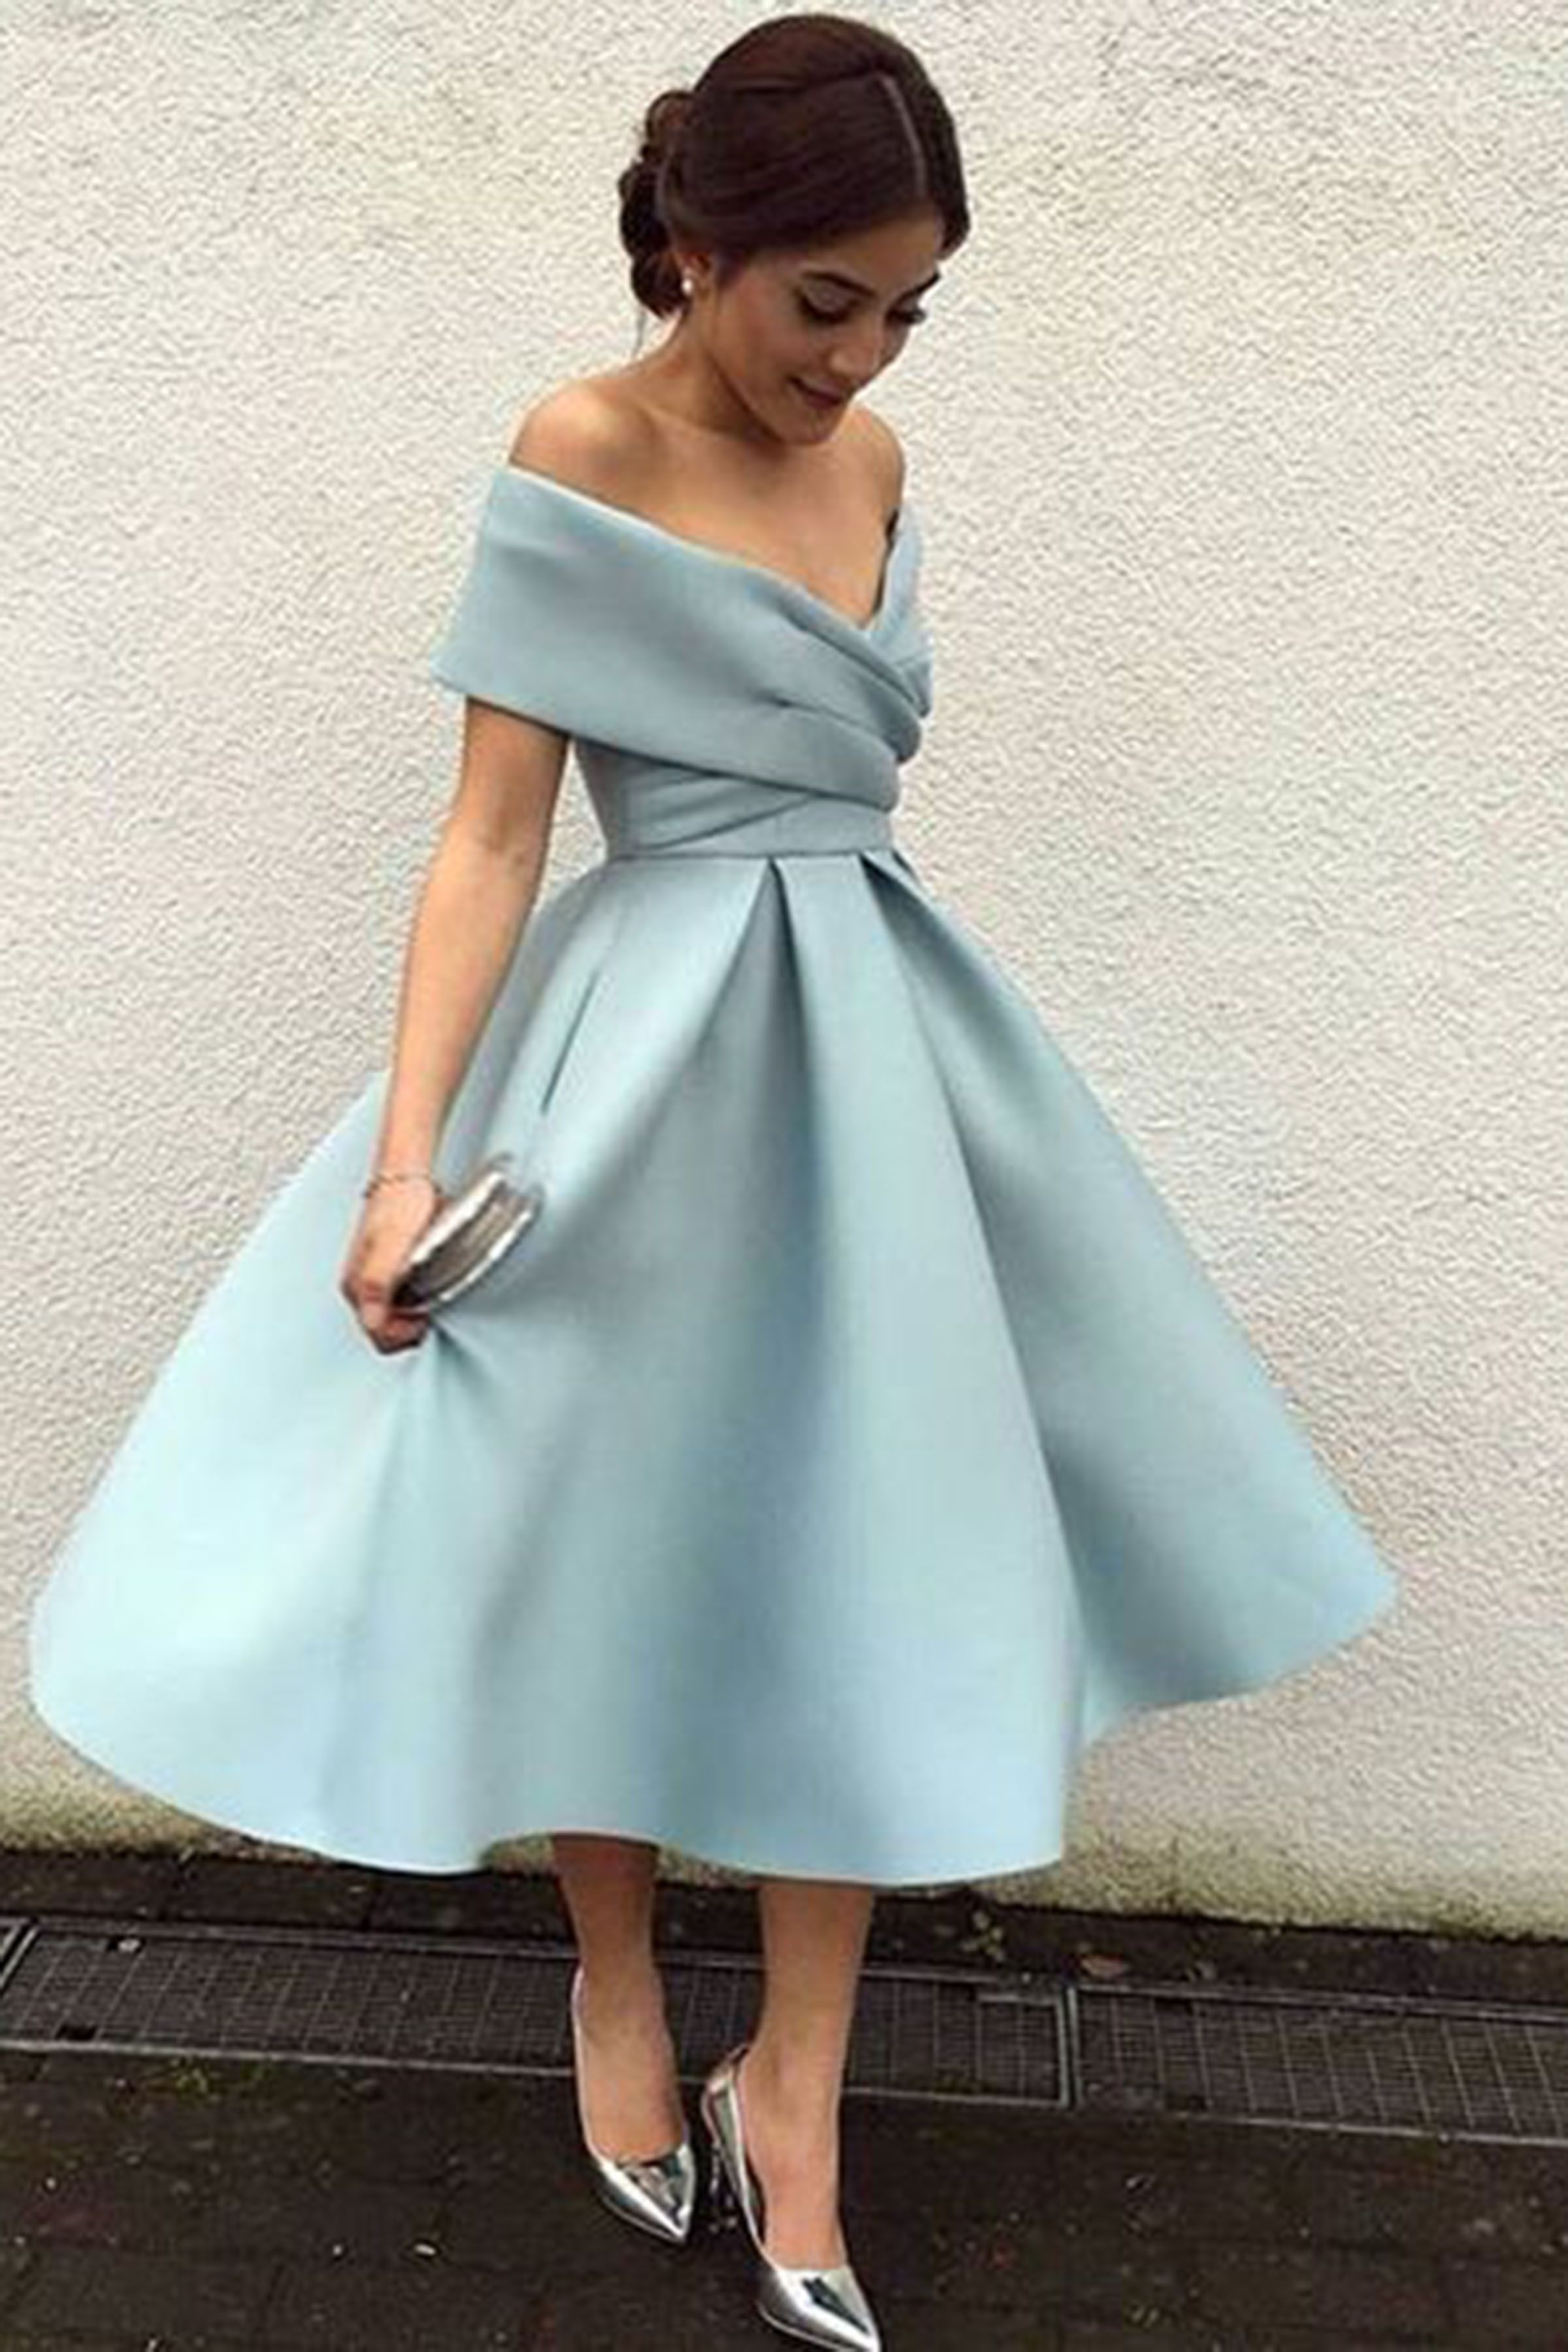 b4d4fc0f15 ... Cocktail Gowns Custom Made. Light blue chiffon off-shoulder A-line  knee-length dress